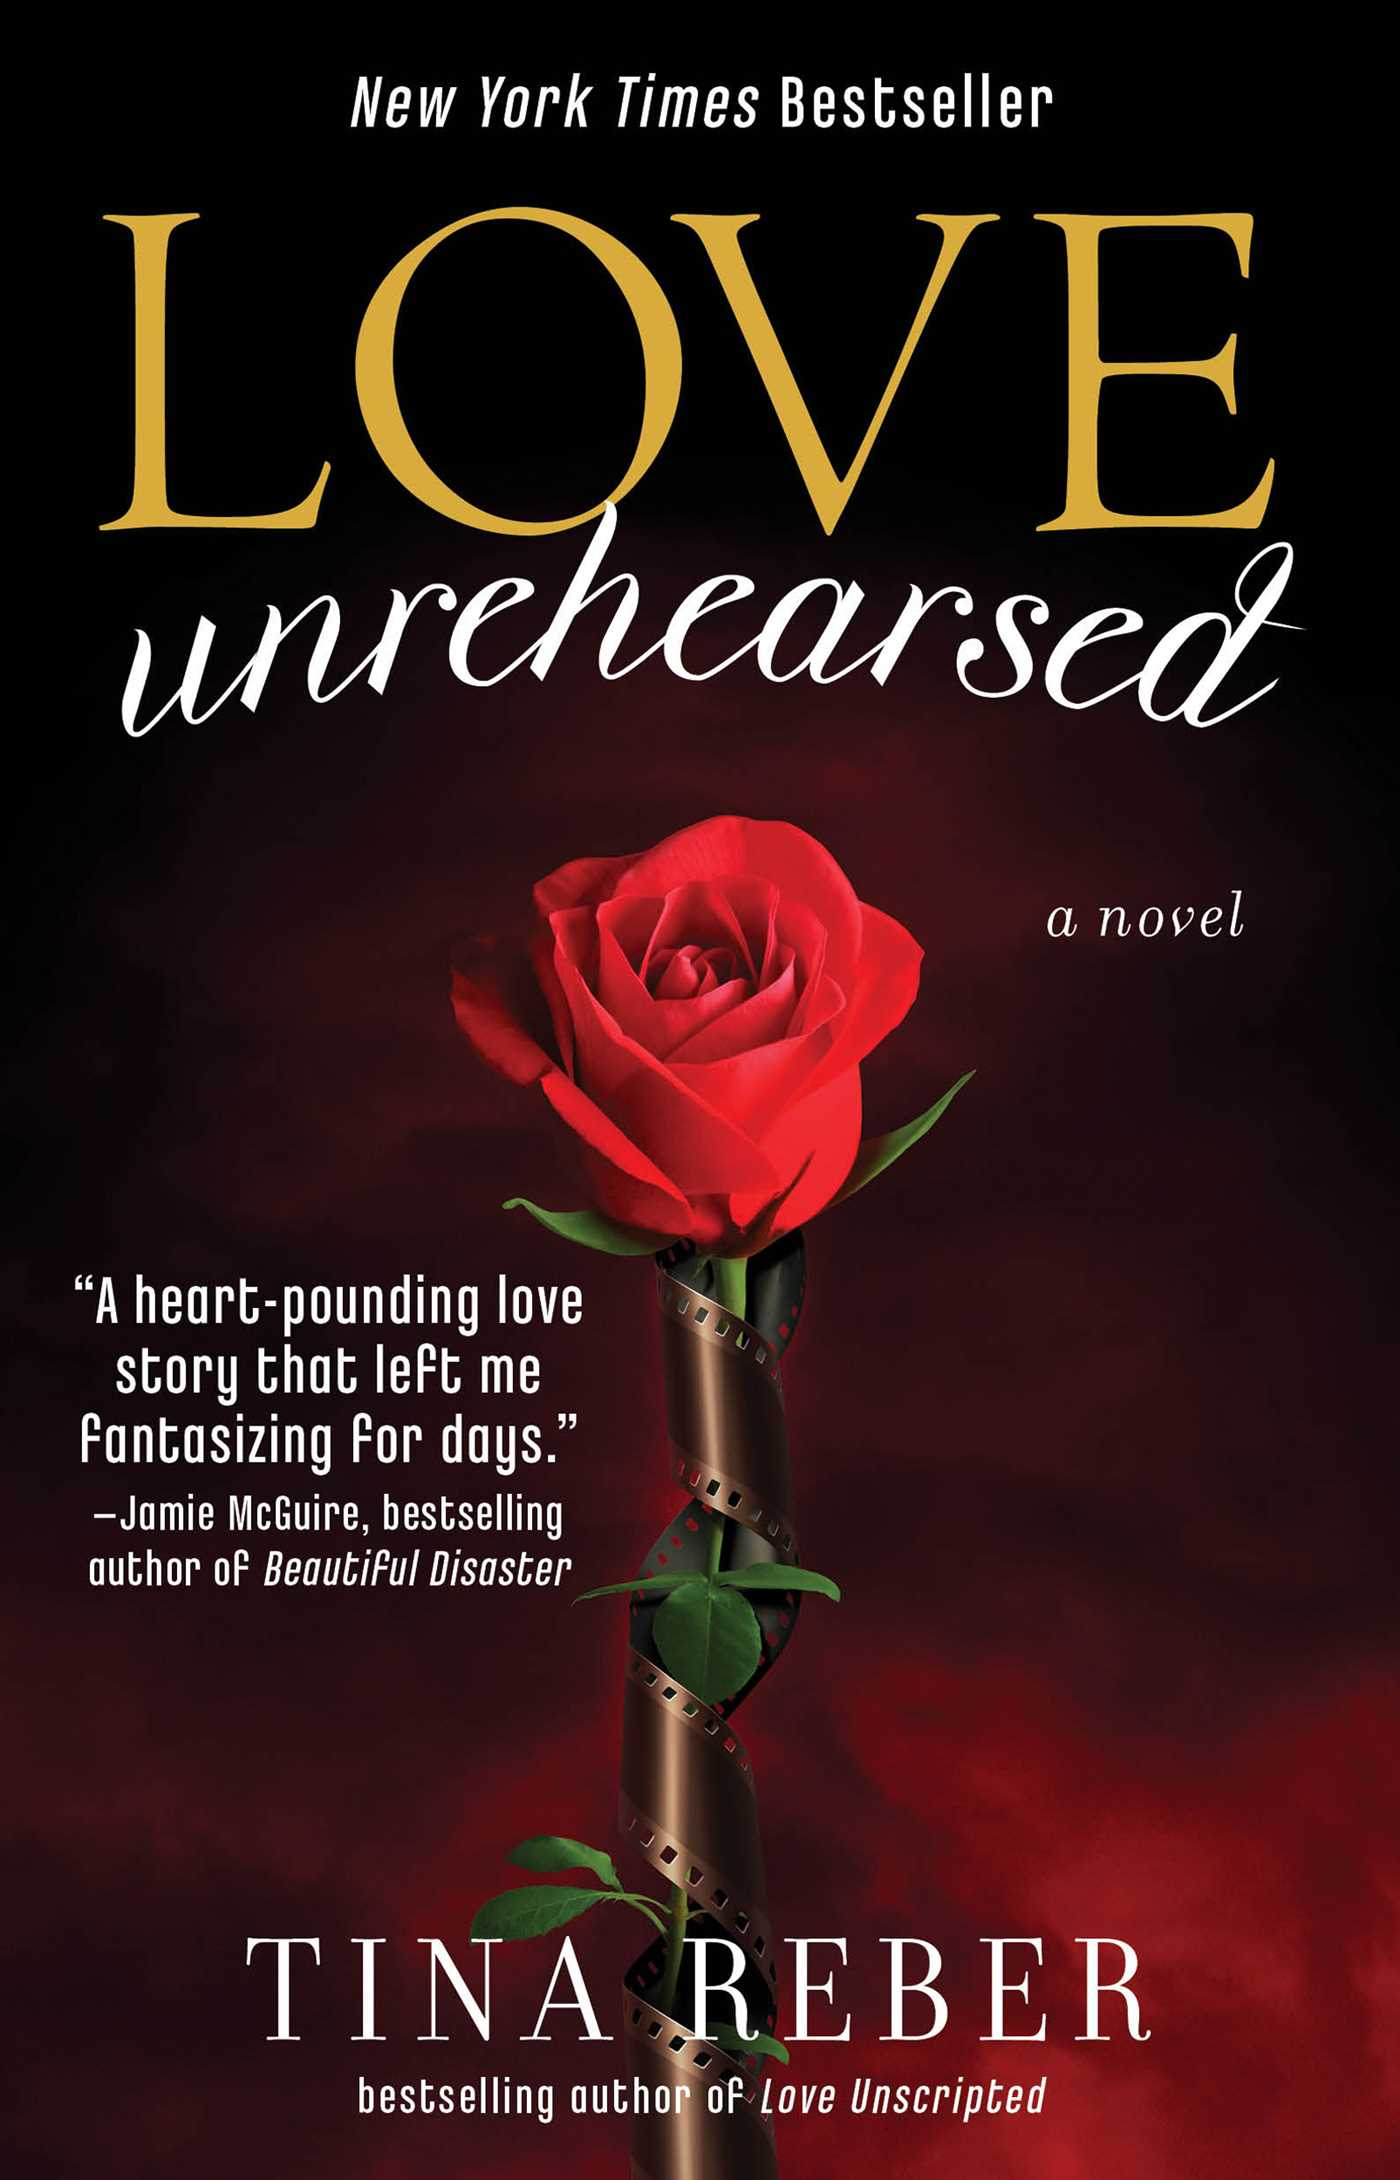 Love unrehearsed 9781476718989 hr